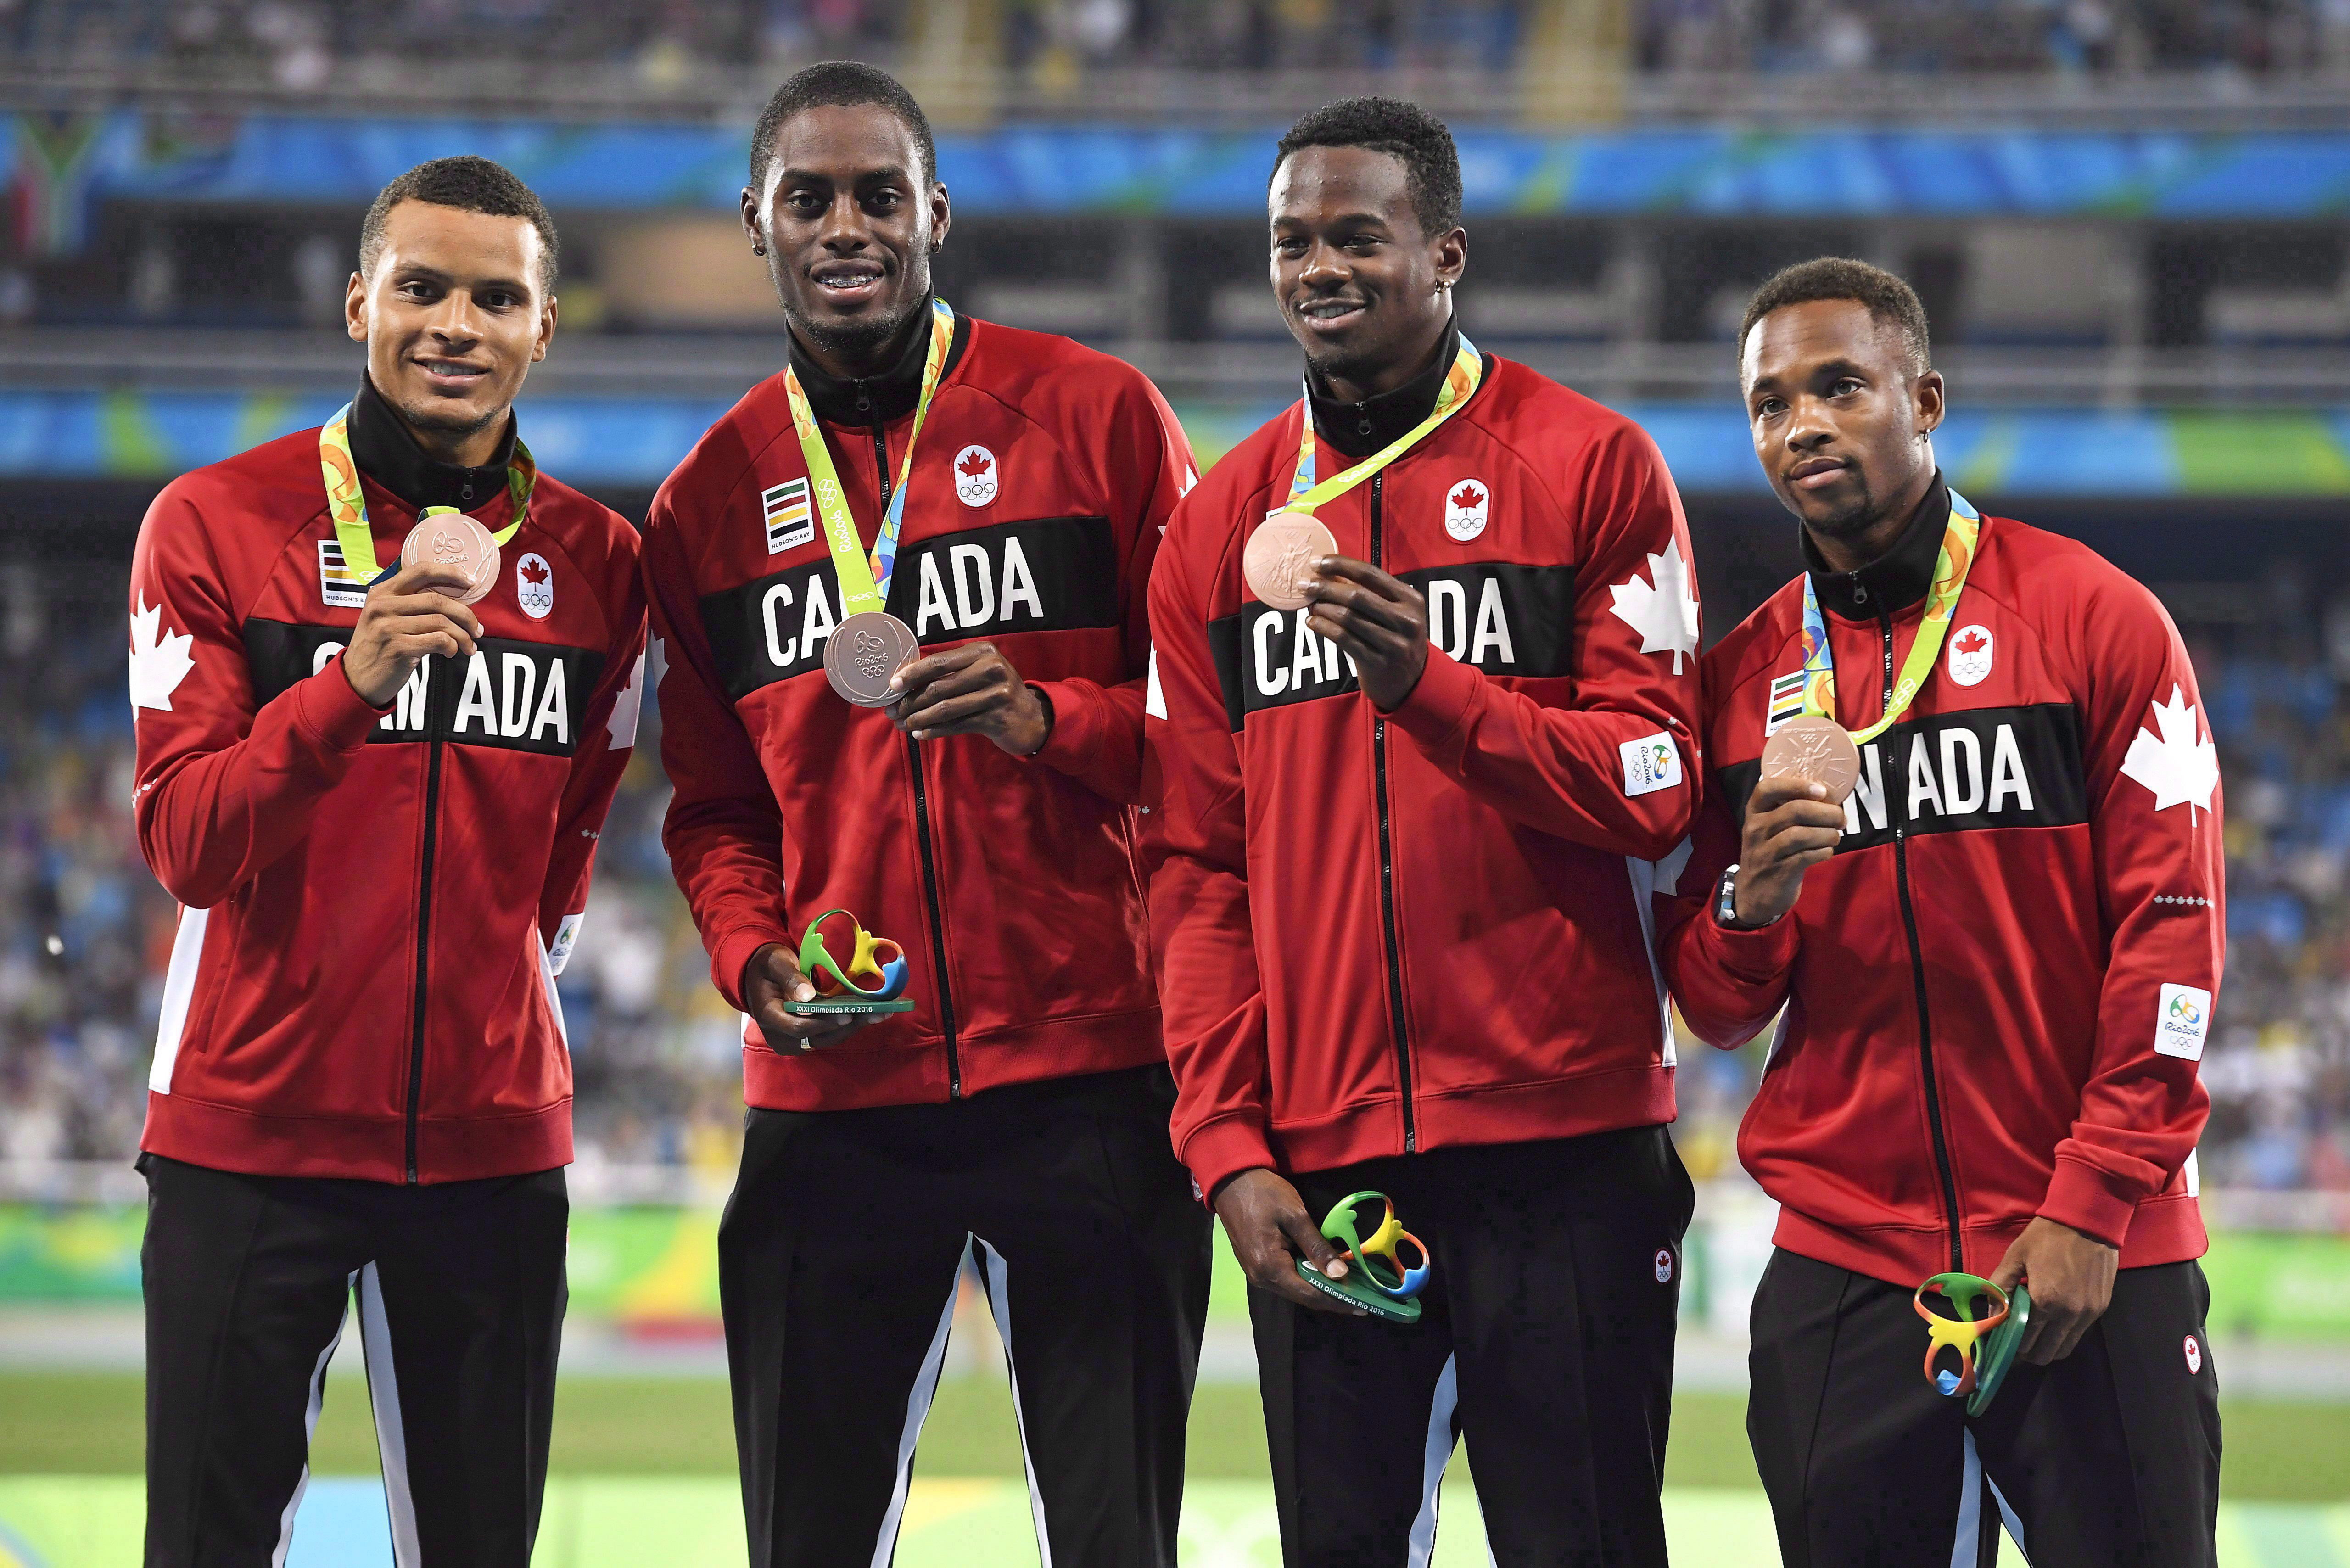 Akeem Haynes Aaron Brown, Brendon Rodney and Andre De Grasse pose with bronze medals on the podium